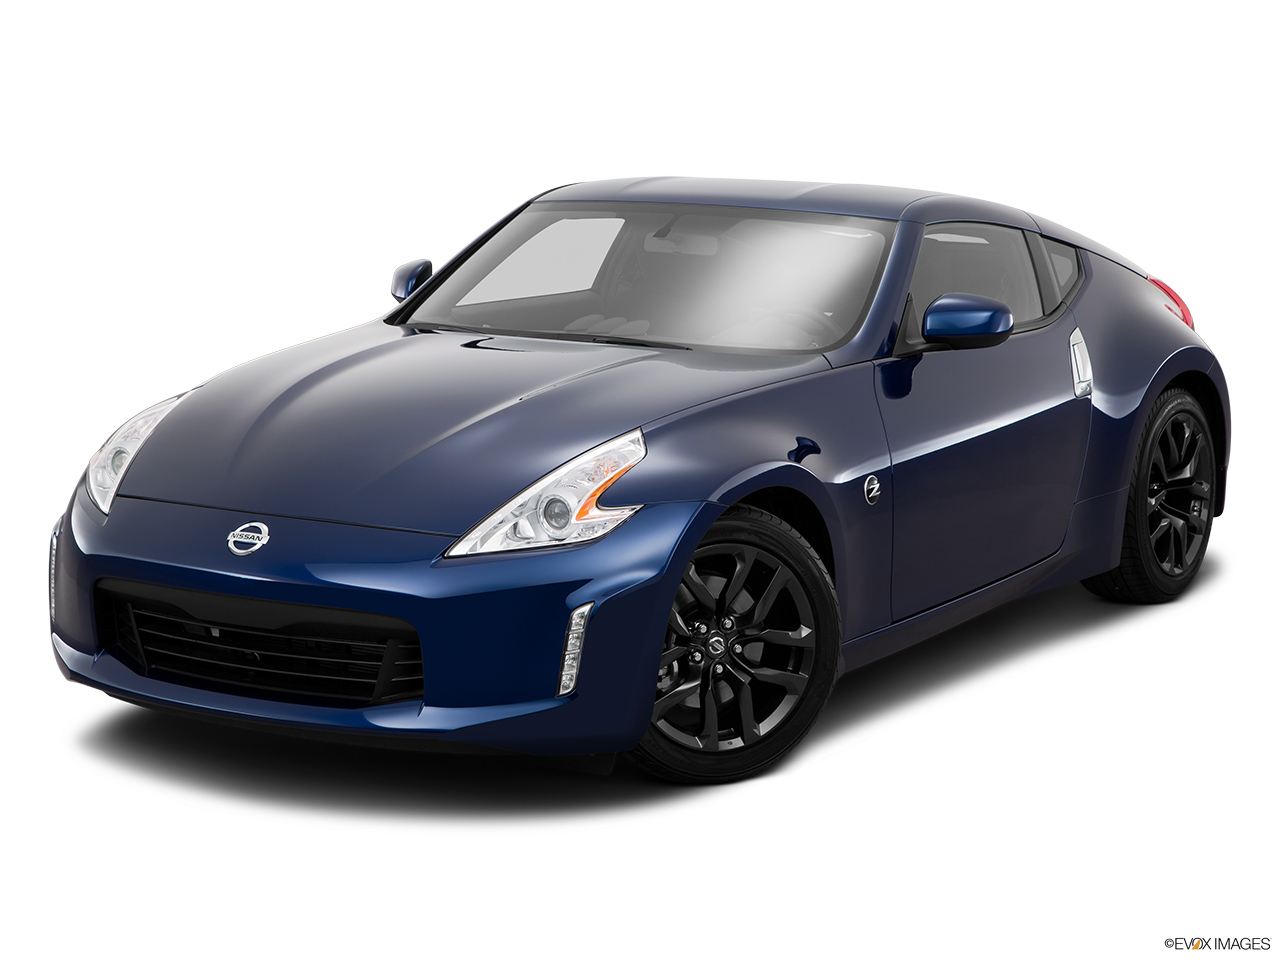 2016 nissan 370z prices in saudi arabia gulf specs. Black Bedroom Furniture Sets. Home Design Ideas